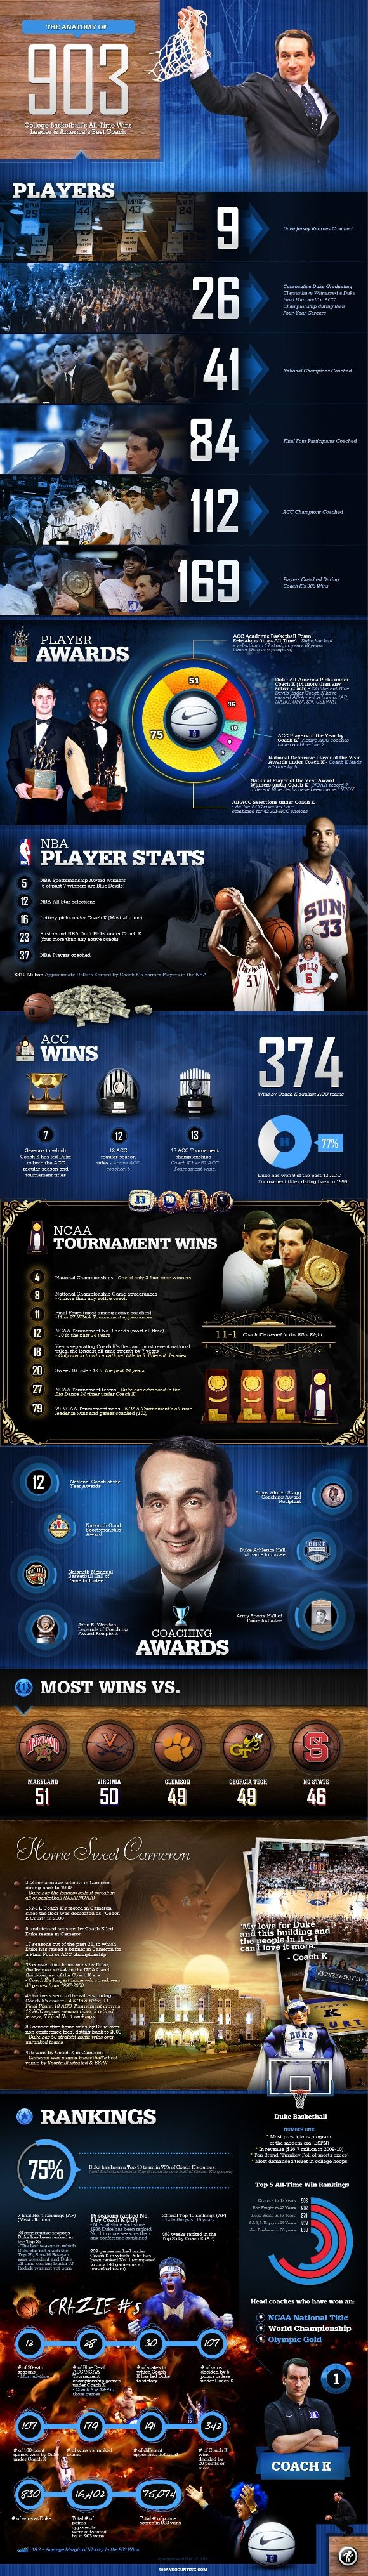 Duke Basketball Infographic